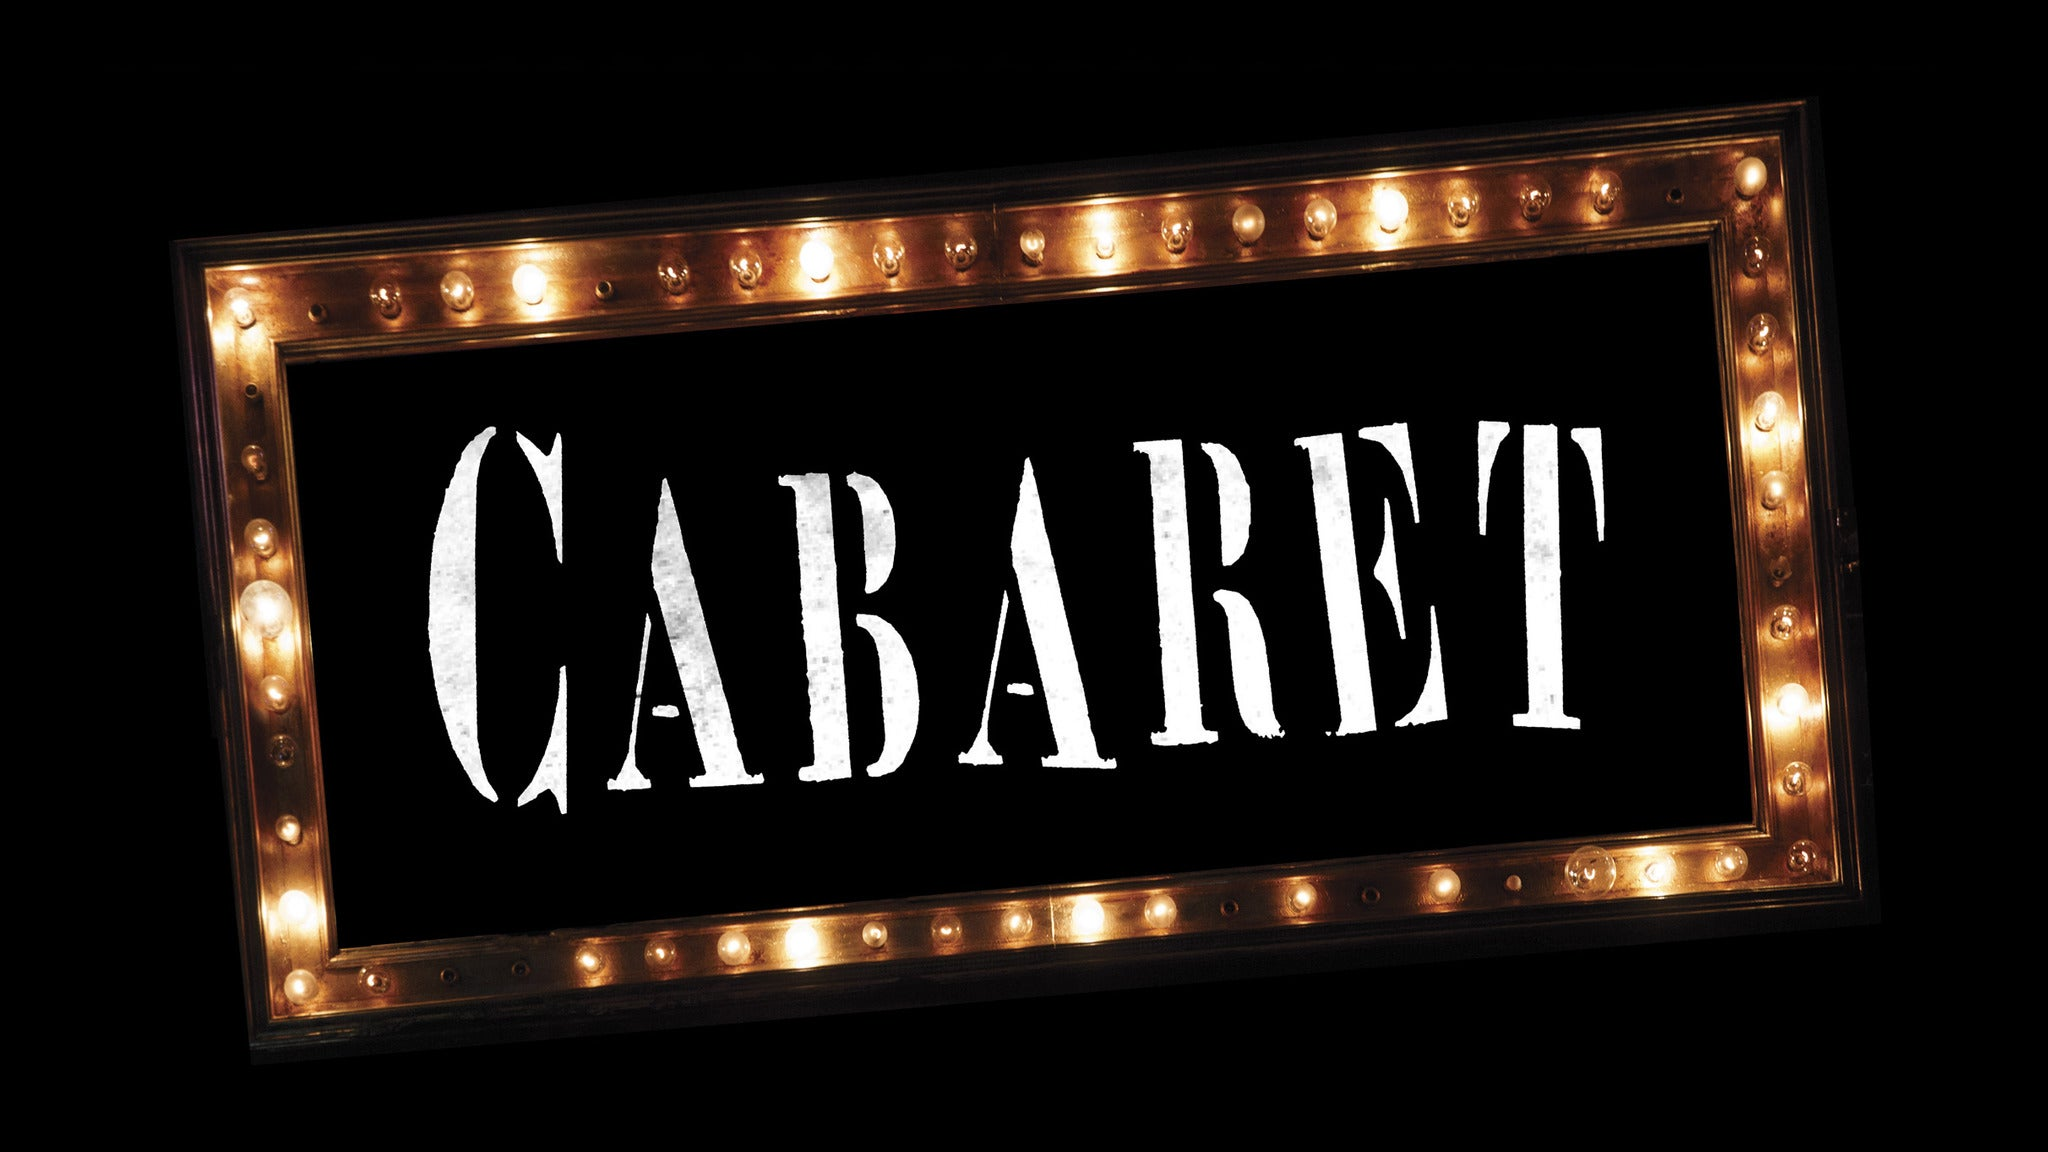 Cabaret at Paramount Theatre - IL